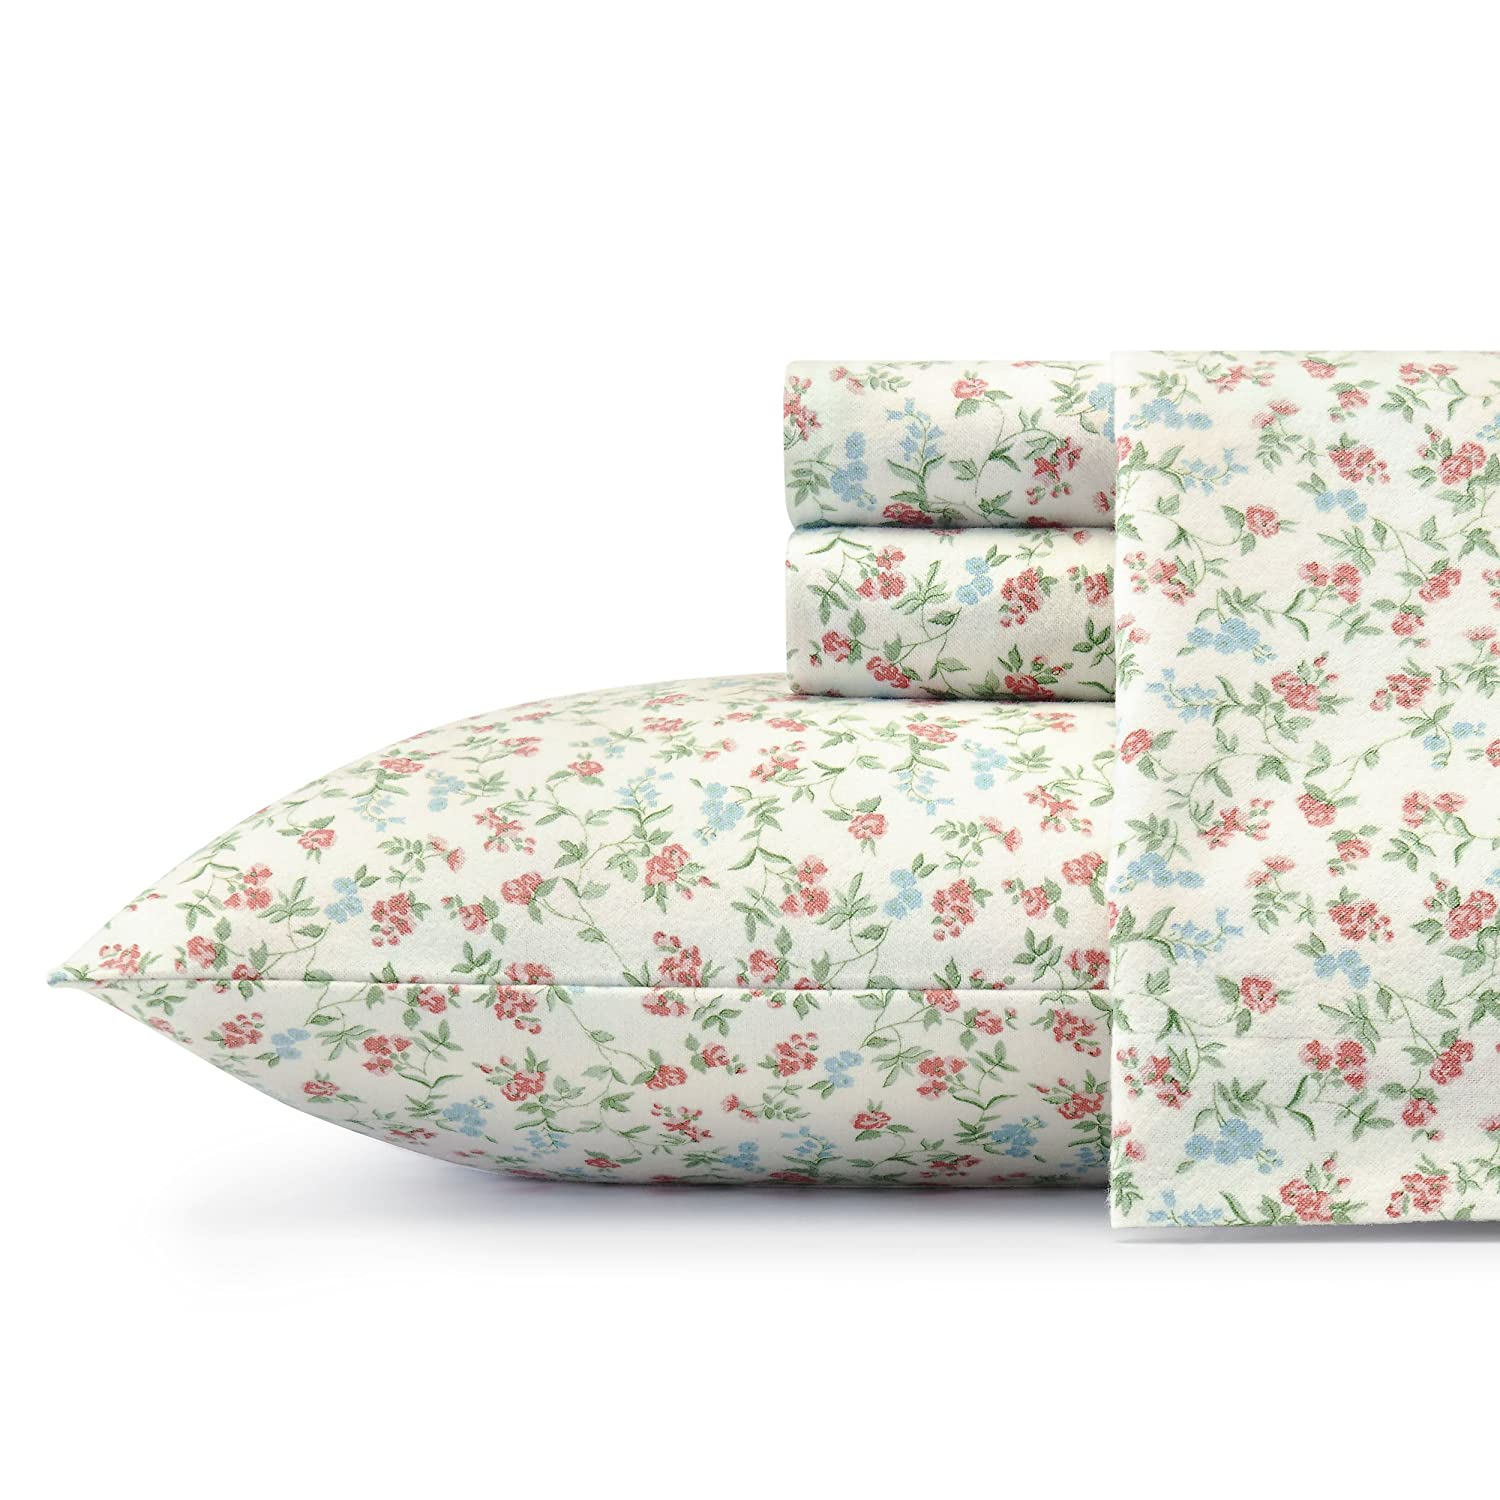 Laura Ashley Flannel Queen Sheet Set: Outlet Laura Ashley Lucy Sheet Set, Queen, Bright Pink